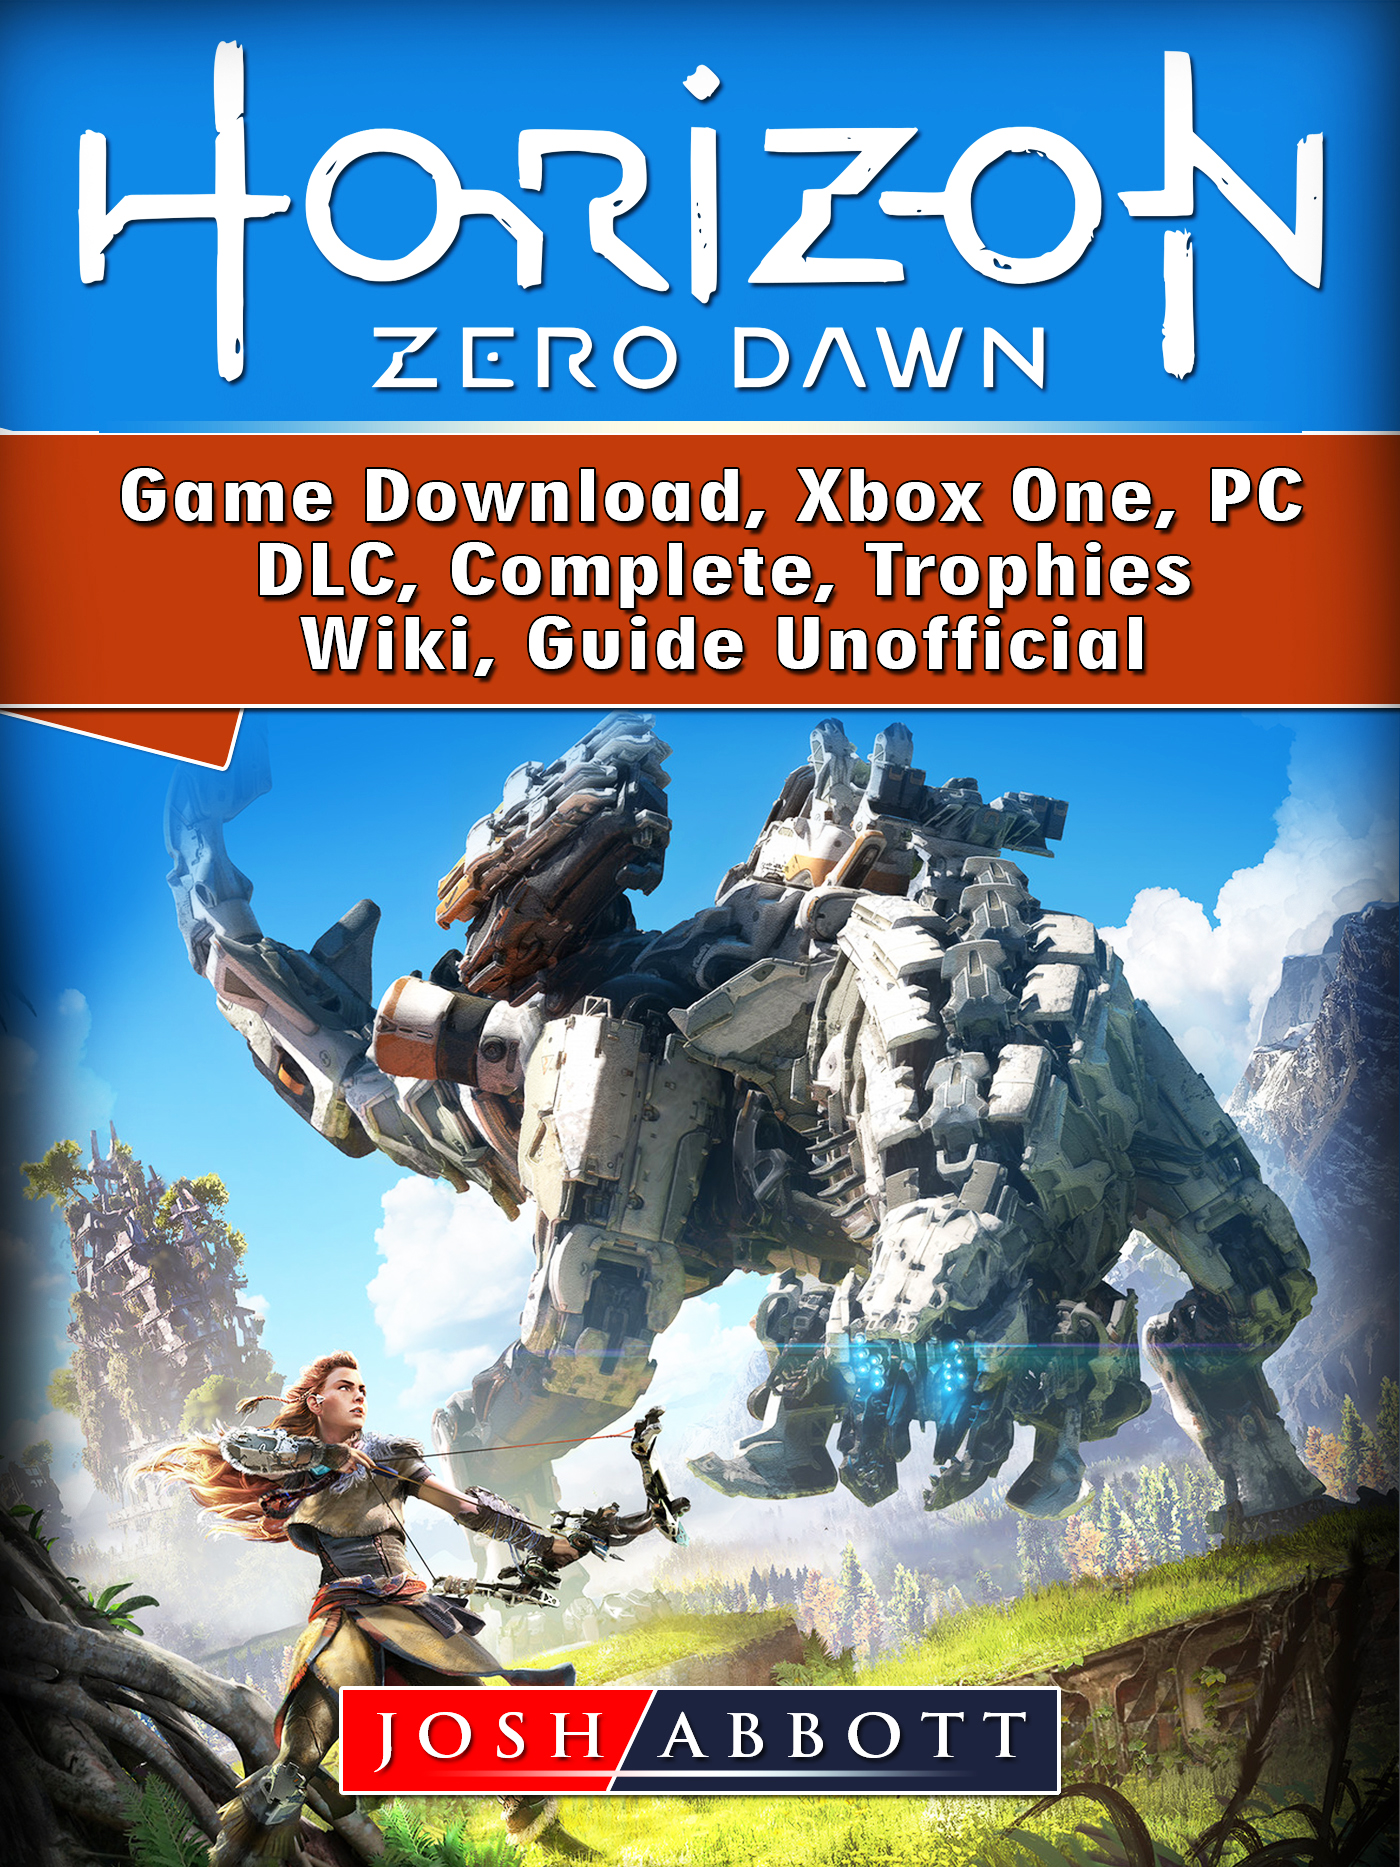 Horizon Zero Dawn Game Download, Xbox One, PC, DLC, Complete, Trophies, Wiki, Guide Unofficial